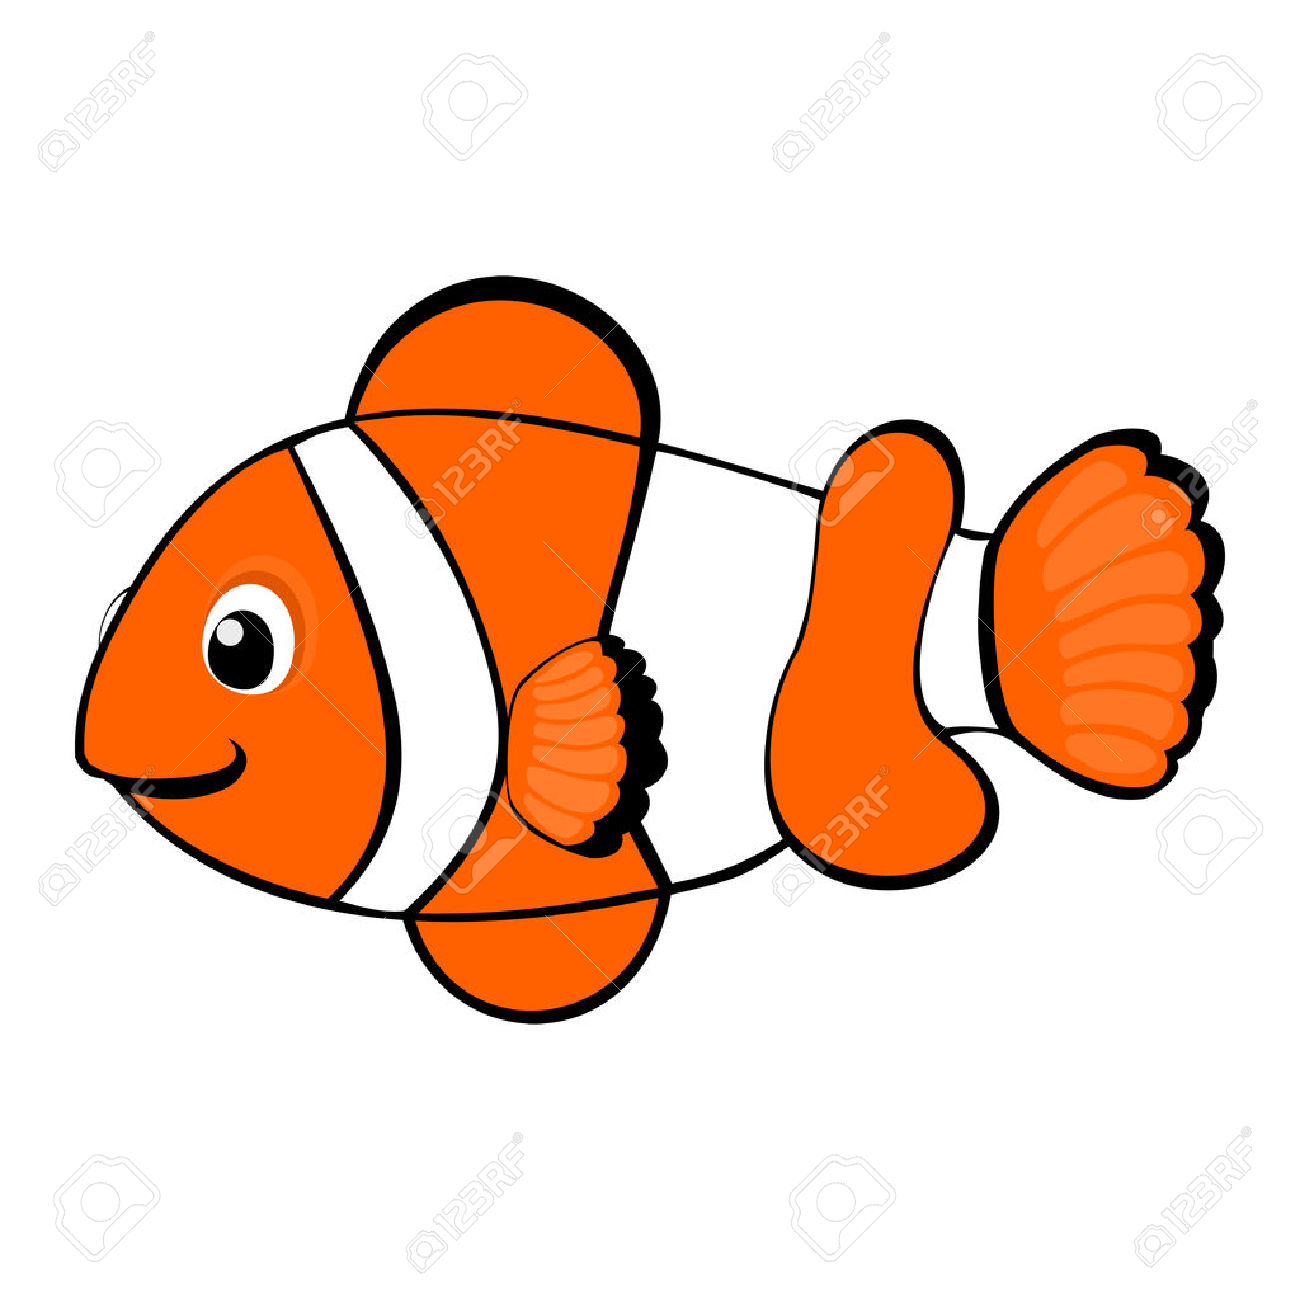 Clown Fish Cartoon Royalty Free Cliparts, Vectors, And Stock.